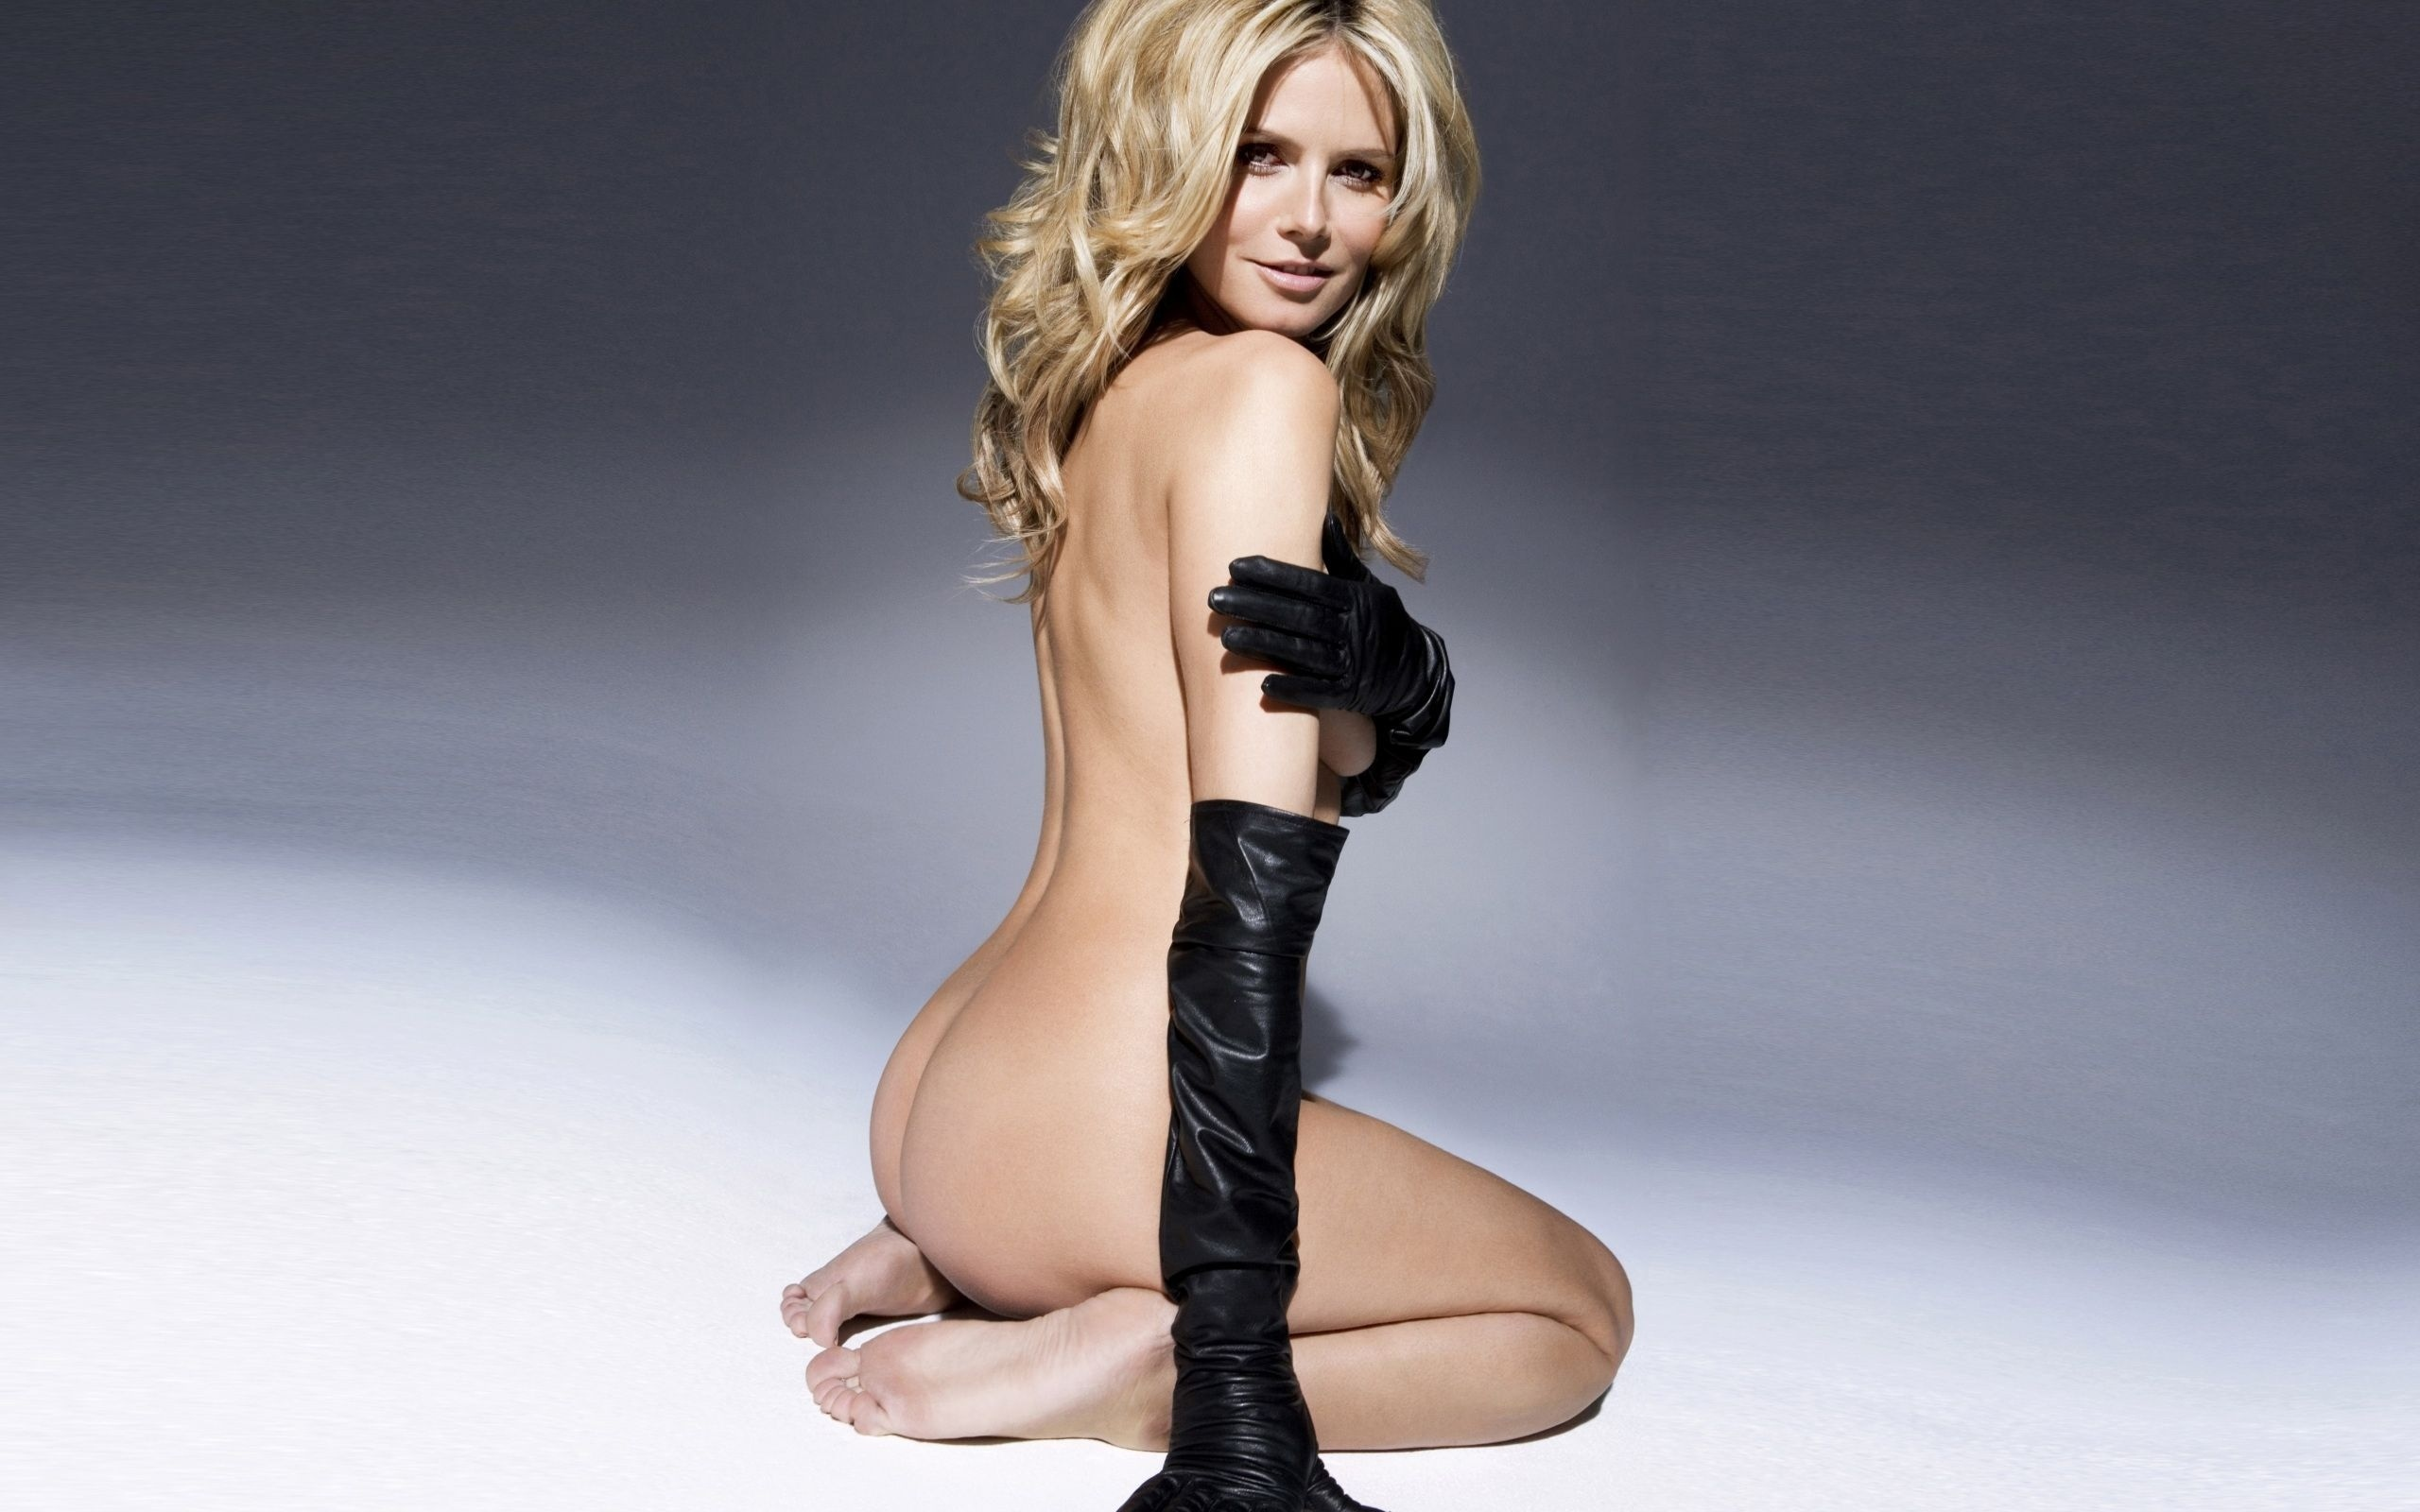 Wallpapers of nude celebs